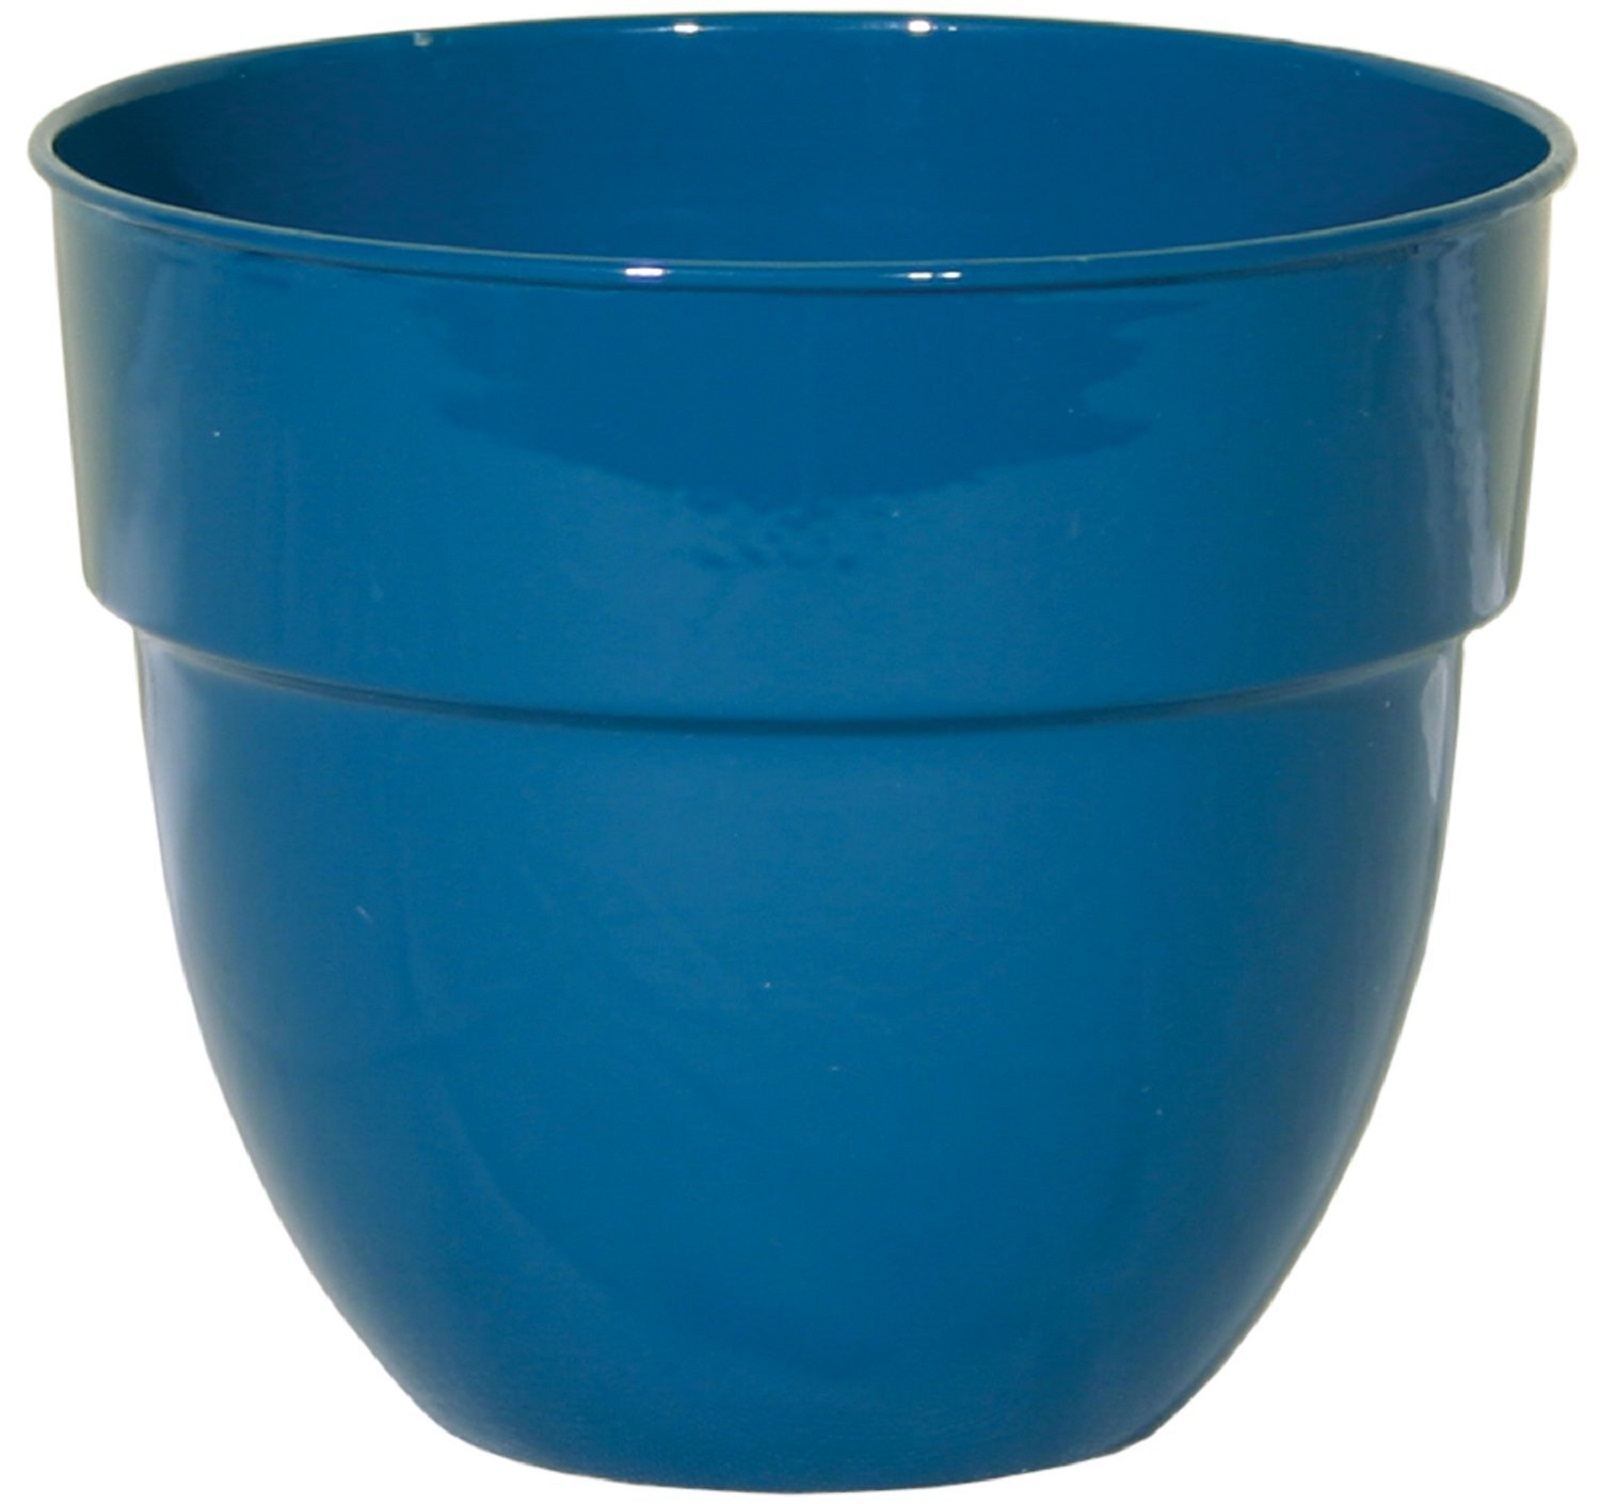 "Robert Allen Home & Garden Mini Bella Classic Bowl Planter 6"""" Bluemoon"